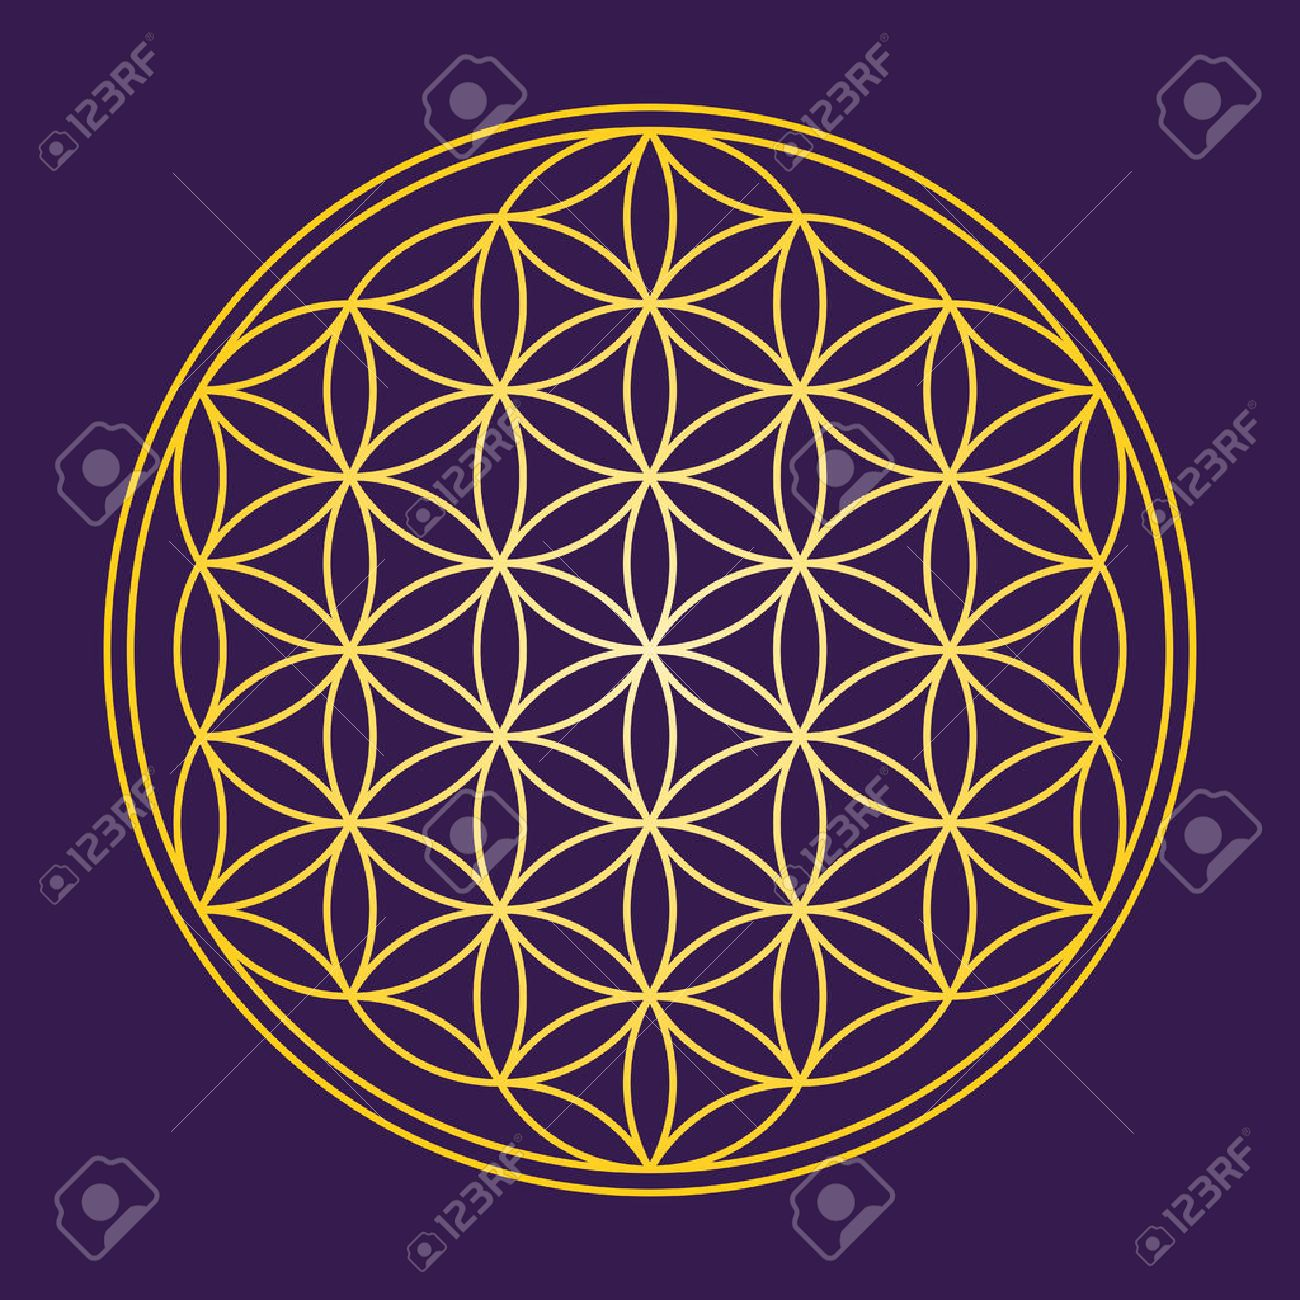 Flower of Life - Gold on dark purple background - a geometrical figure, composed of multiple evenly-spaced, overlapping circles. A strong symbol since ancient times, forming a flower-like pattern. Banque d'images - 52545866